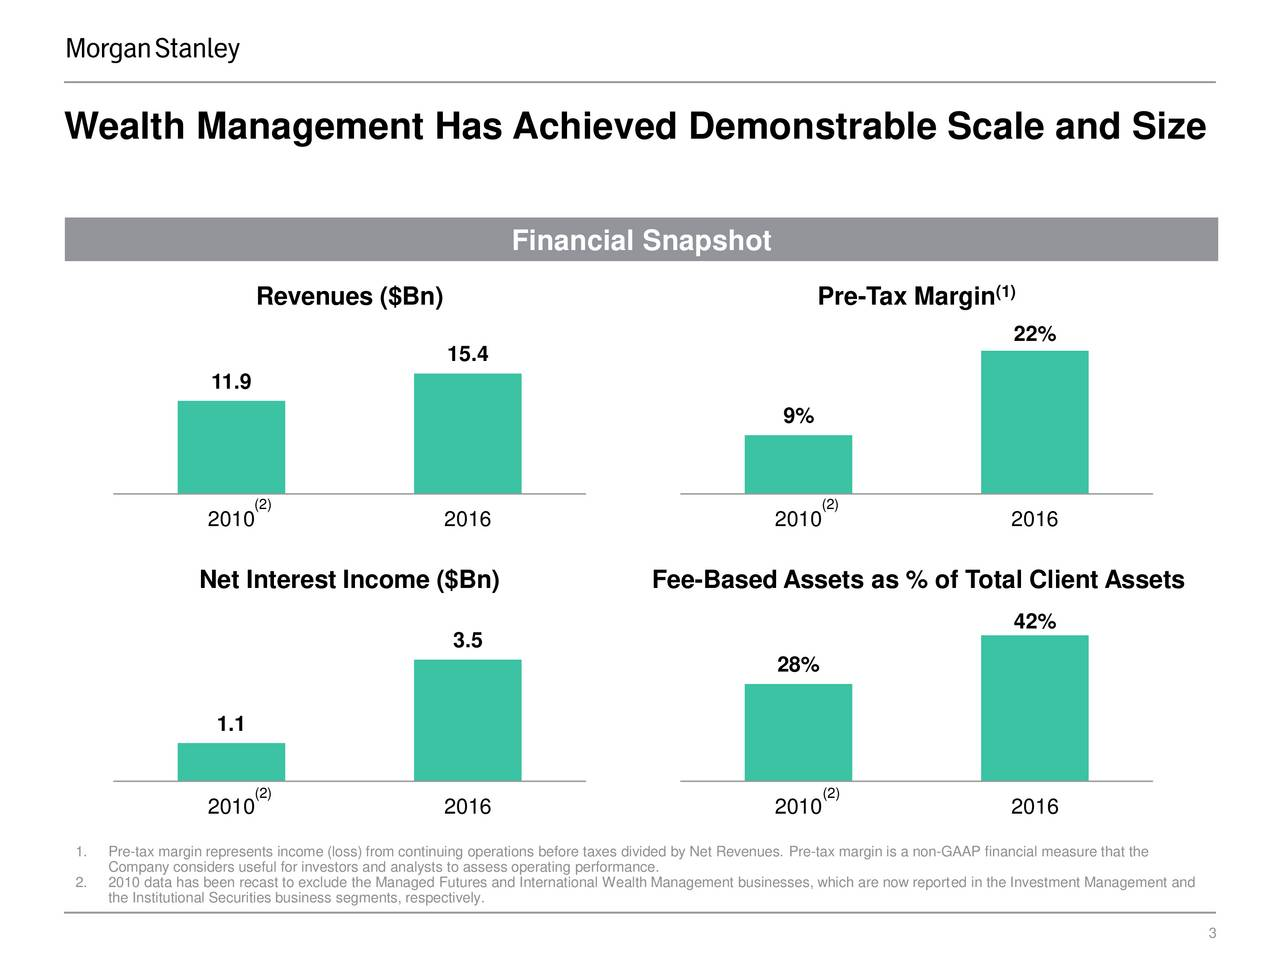 Place content Financial Snapshot below this line Revenues ($Bn) Pre-Tax Margin (1) 22% 15.4 11.9 9% (2) (2) 2010 2016 2010 2016 Net Interest Income ($Bn) Fee-Based Assets as % of Total Client Assets 42% 3.5 28% 1.1 (2) (2) 2010 2016 2010 2016 1. Pre-tax margin represents income (loss) from continuing operations before taxes divided by Net Revenues. Pre-tax margin is a non-GAAP financial measure that the Company considers useful for investors and analysts to assess operating performance. Source and 2. 2010 data has been recast to exclude the Managed Futures and International Wealth Management businesses, which are now reported in the Investment Management and Footnotes Guideline the Institutional Securities business segments, respectively.